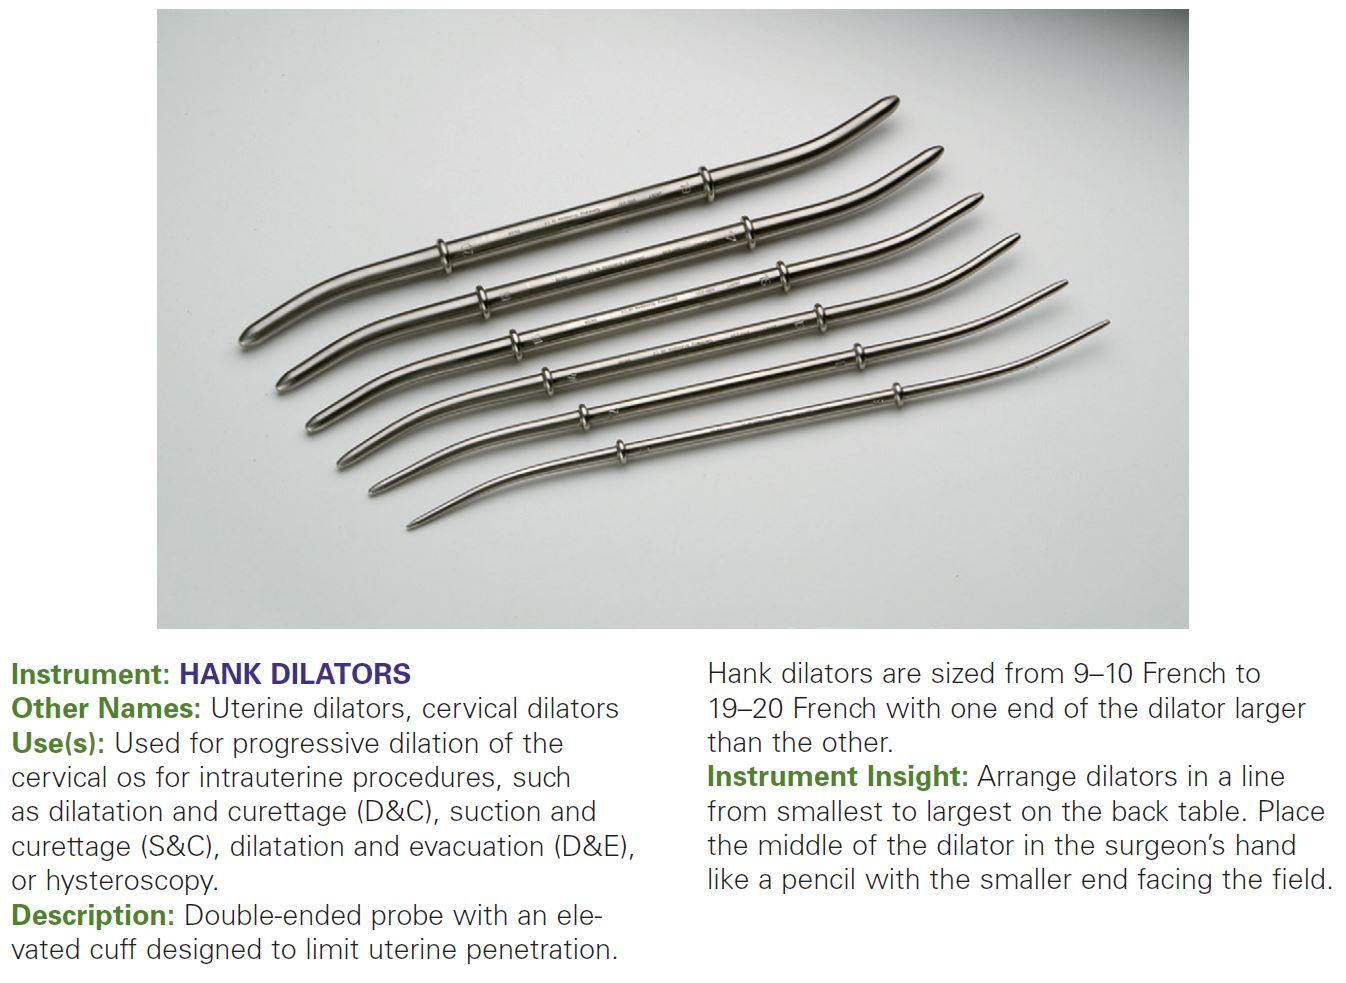 HANK DILATORS